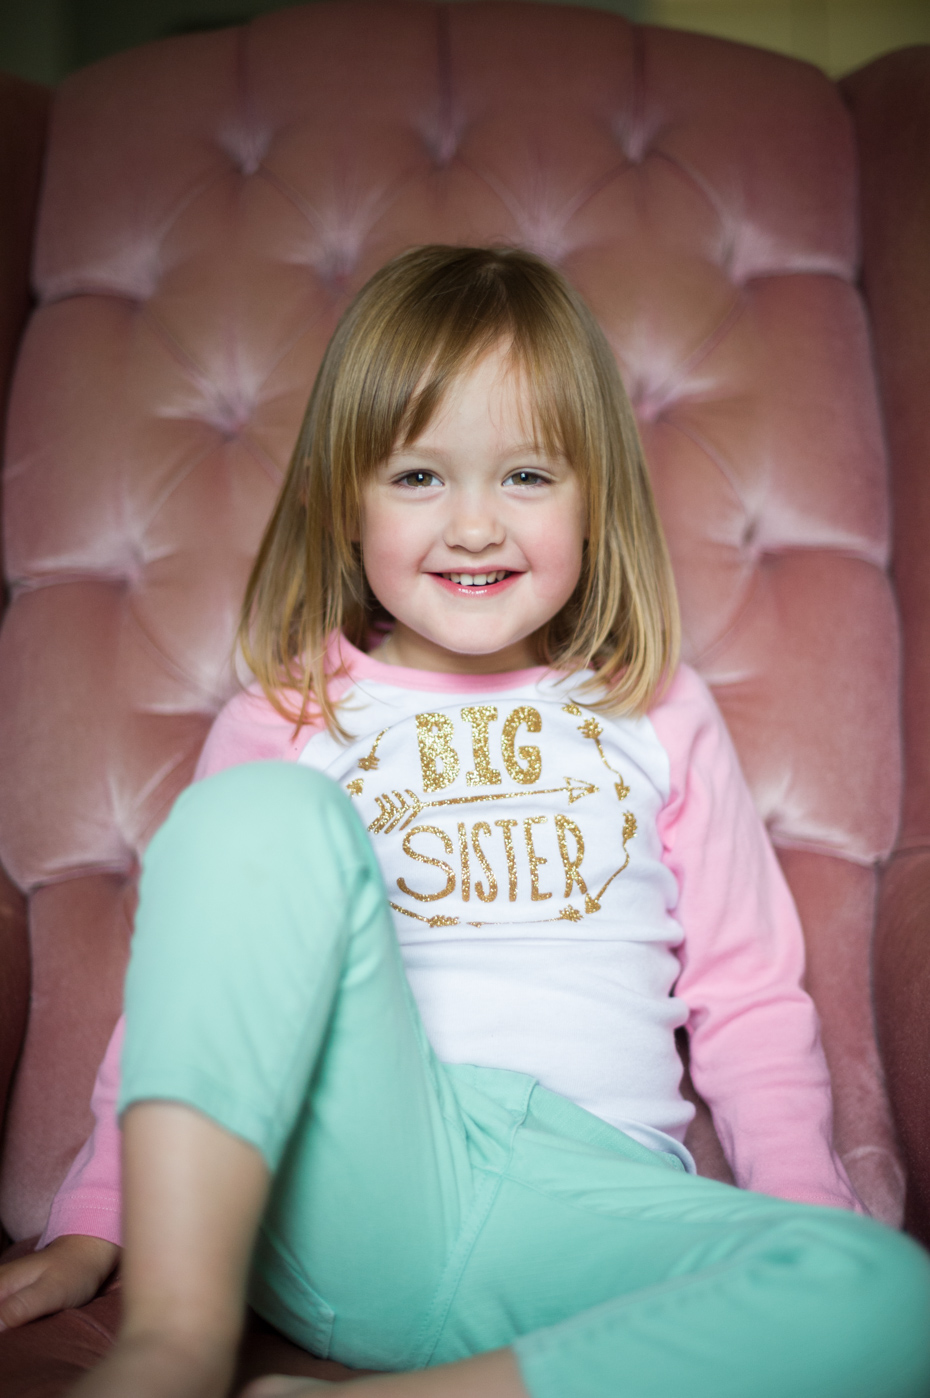 Big sister t-shirt for newborn photos